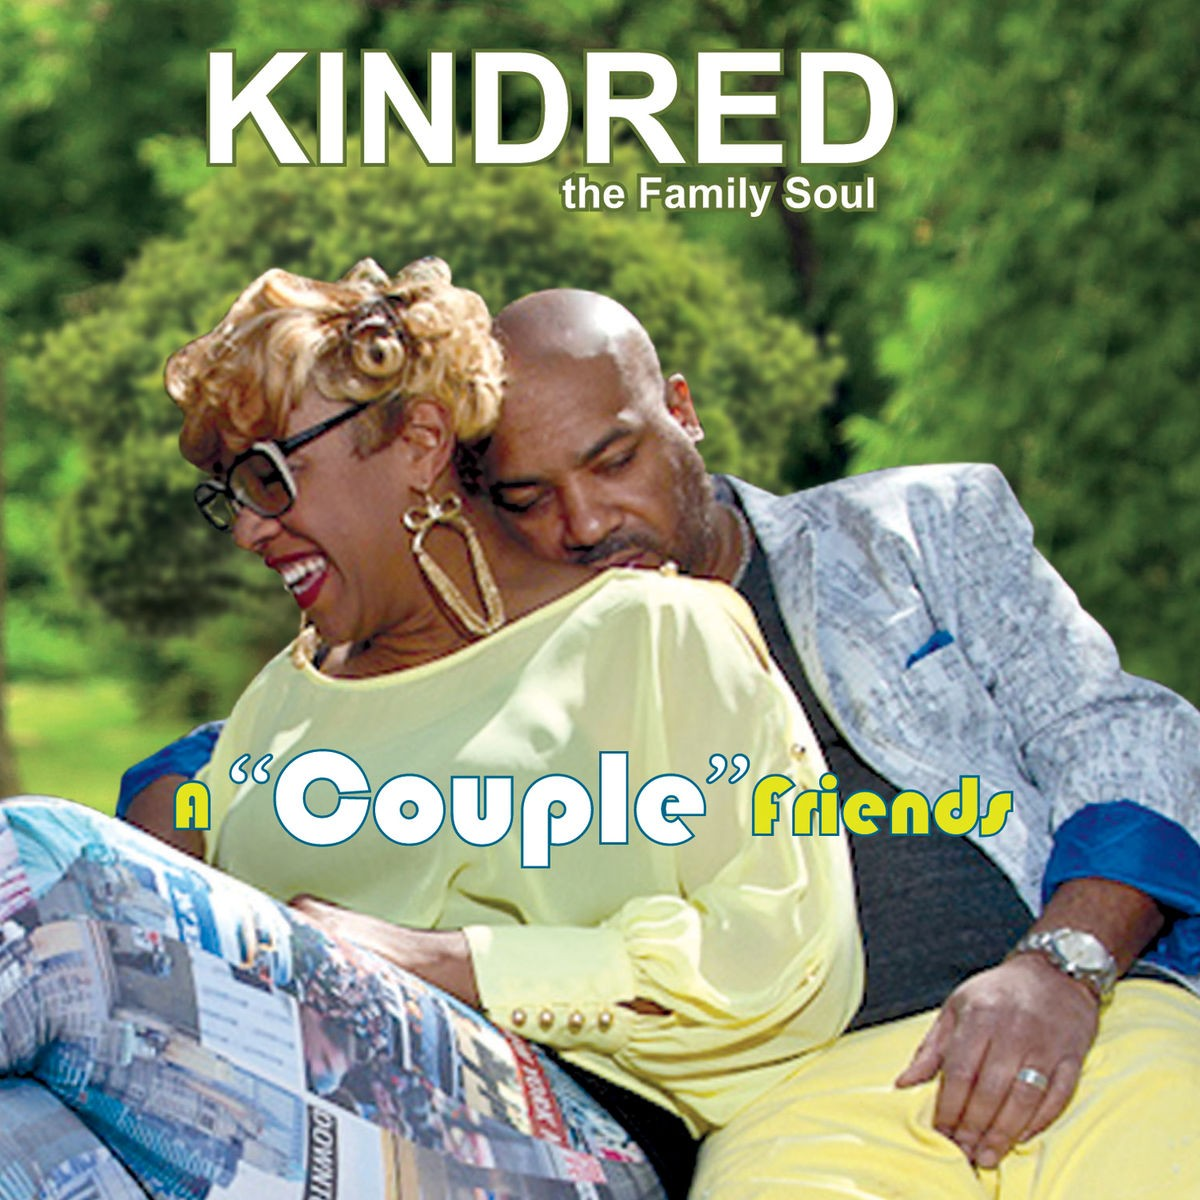 Kindred The Family Soul - A Couple Friends CD - SHAN 5821